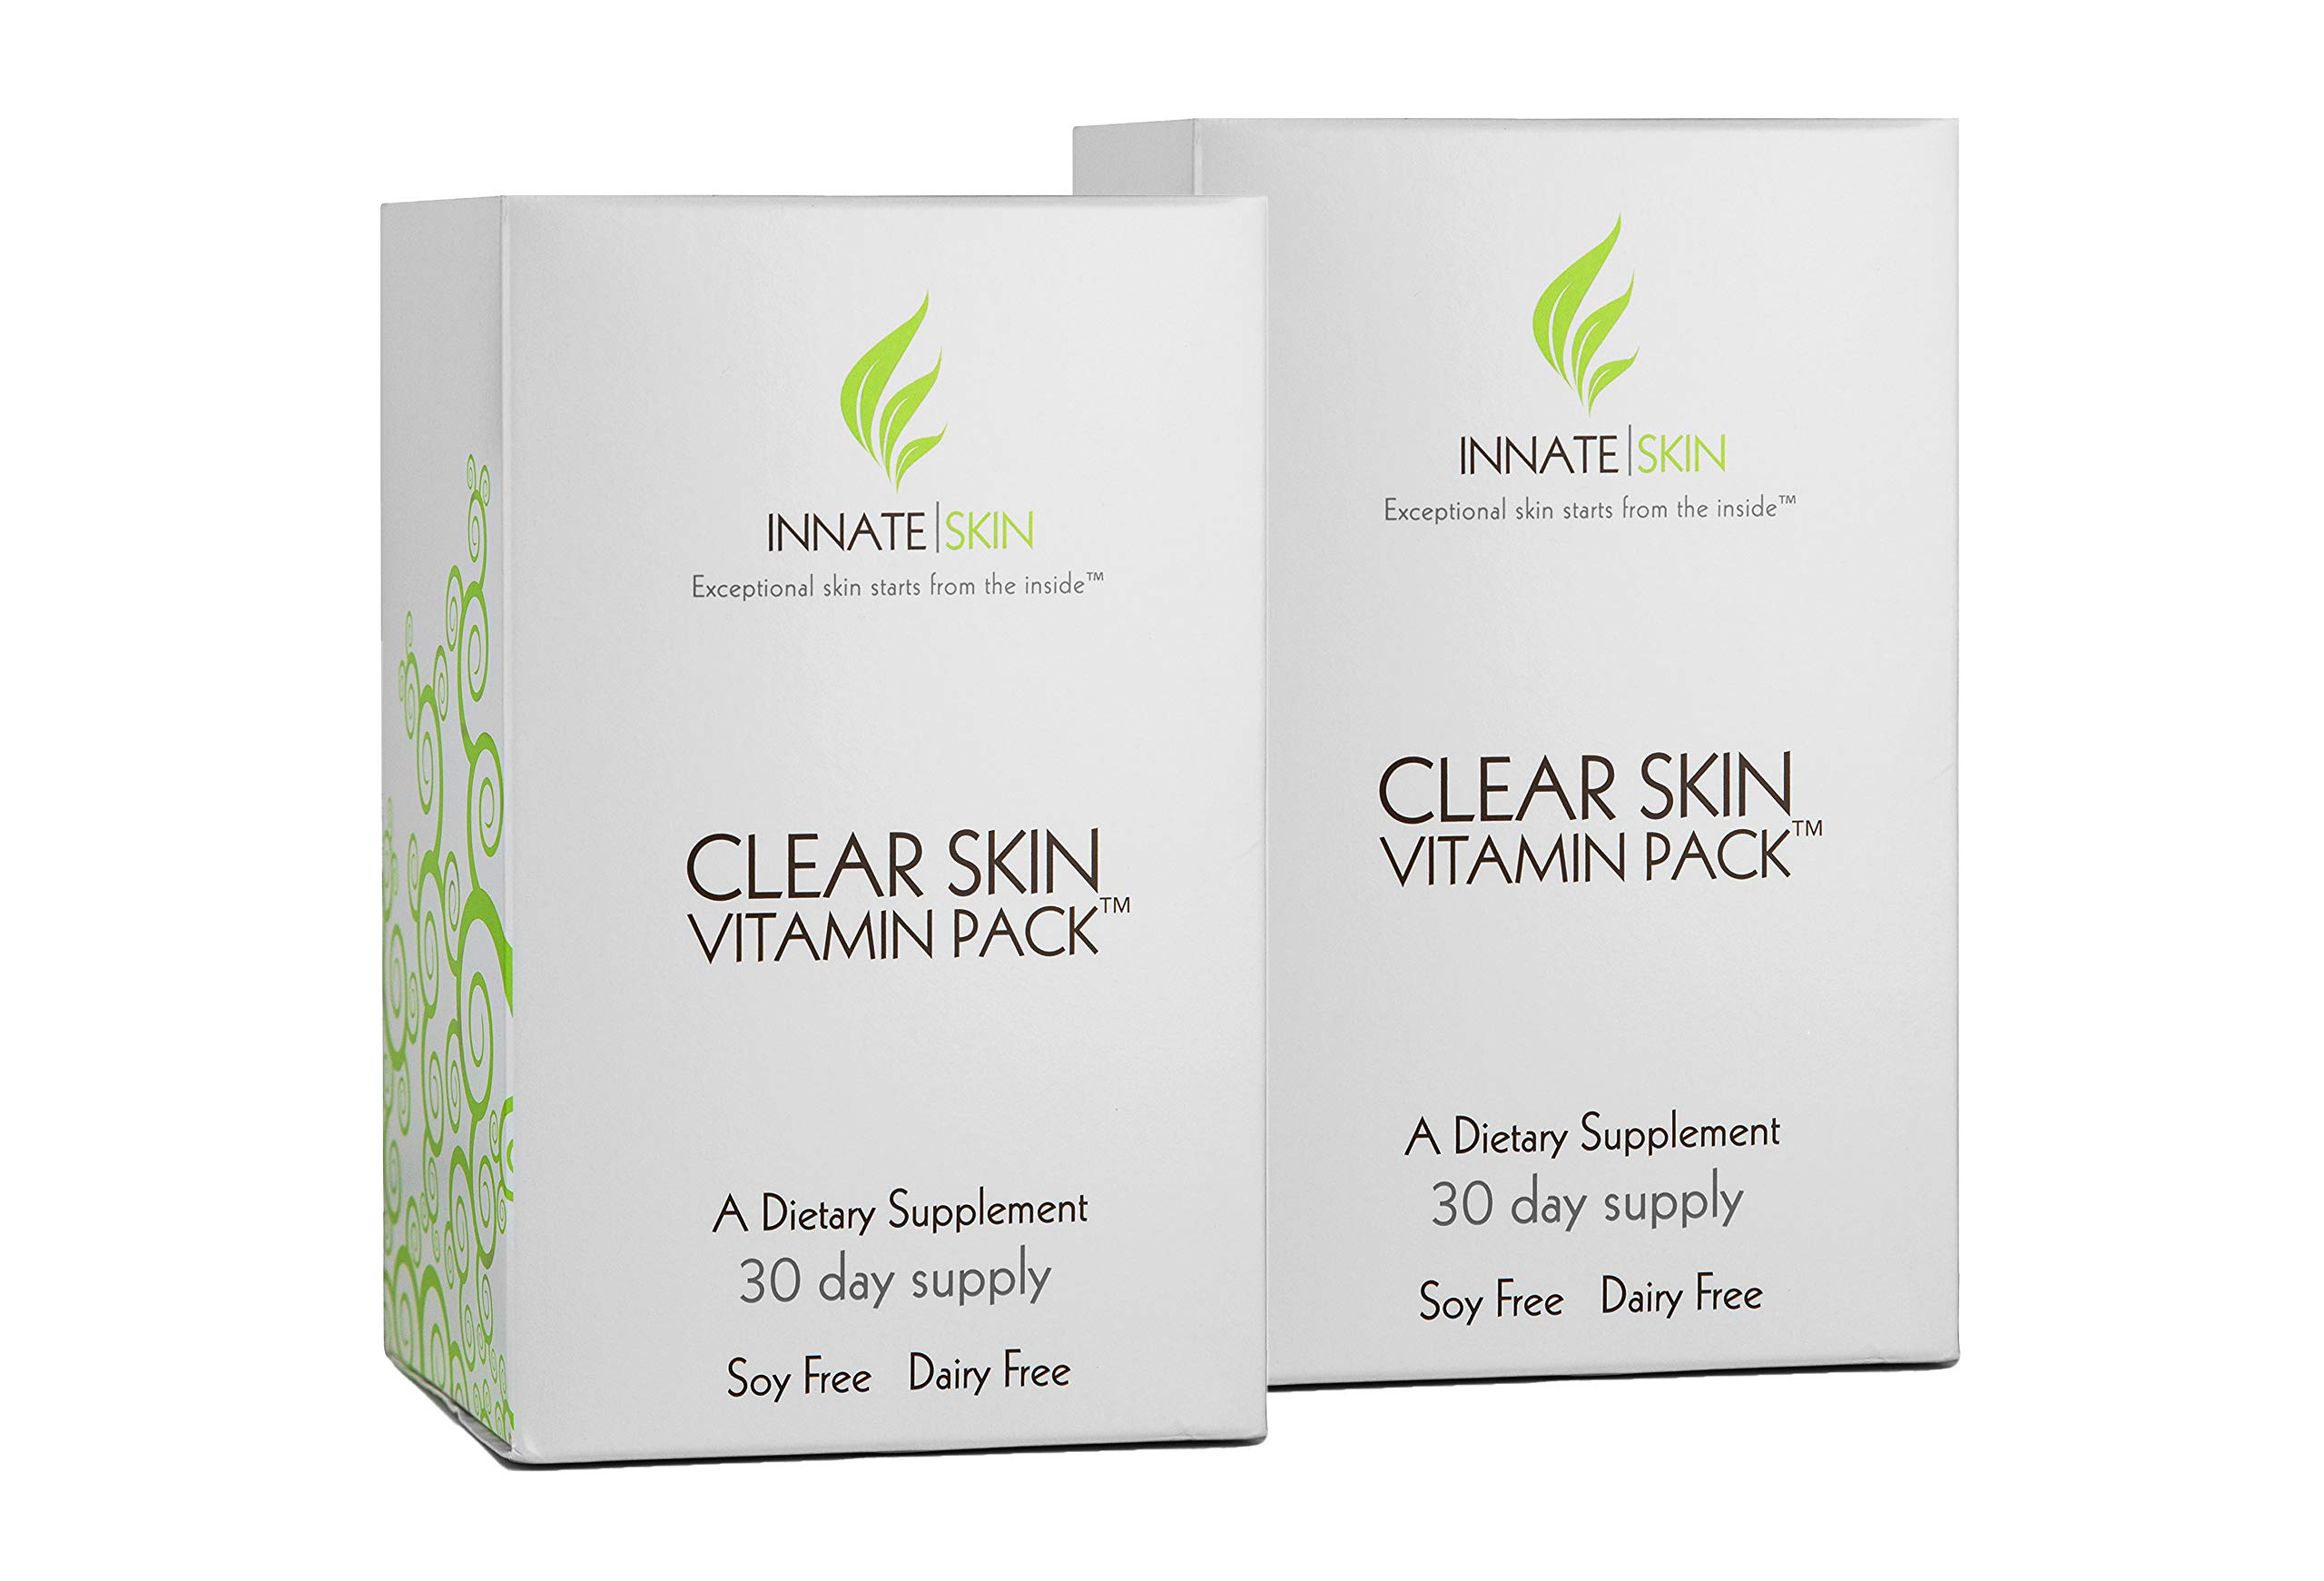 Clear Skin Advanced Vitamin Pack for Acne - 60 Day Supply of Vitamins for Acne